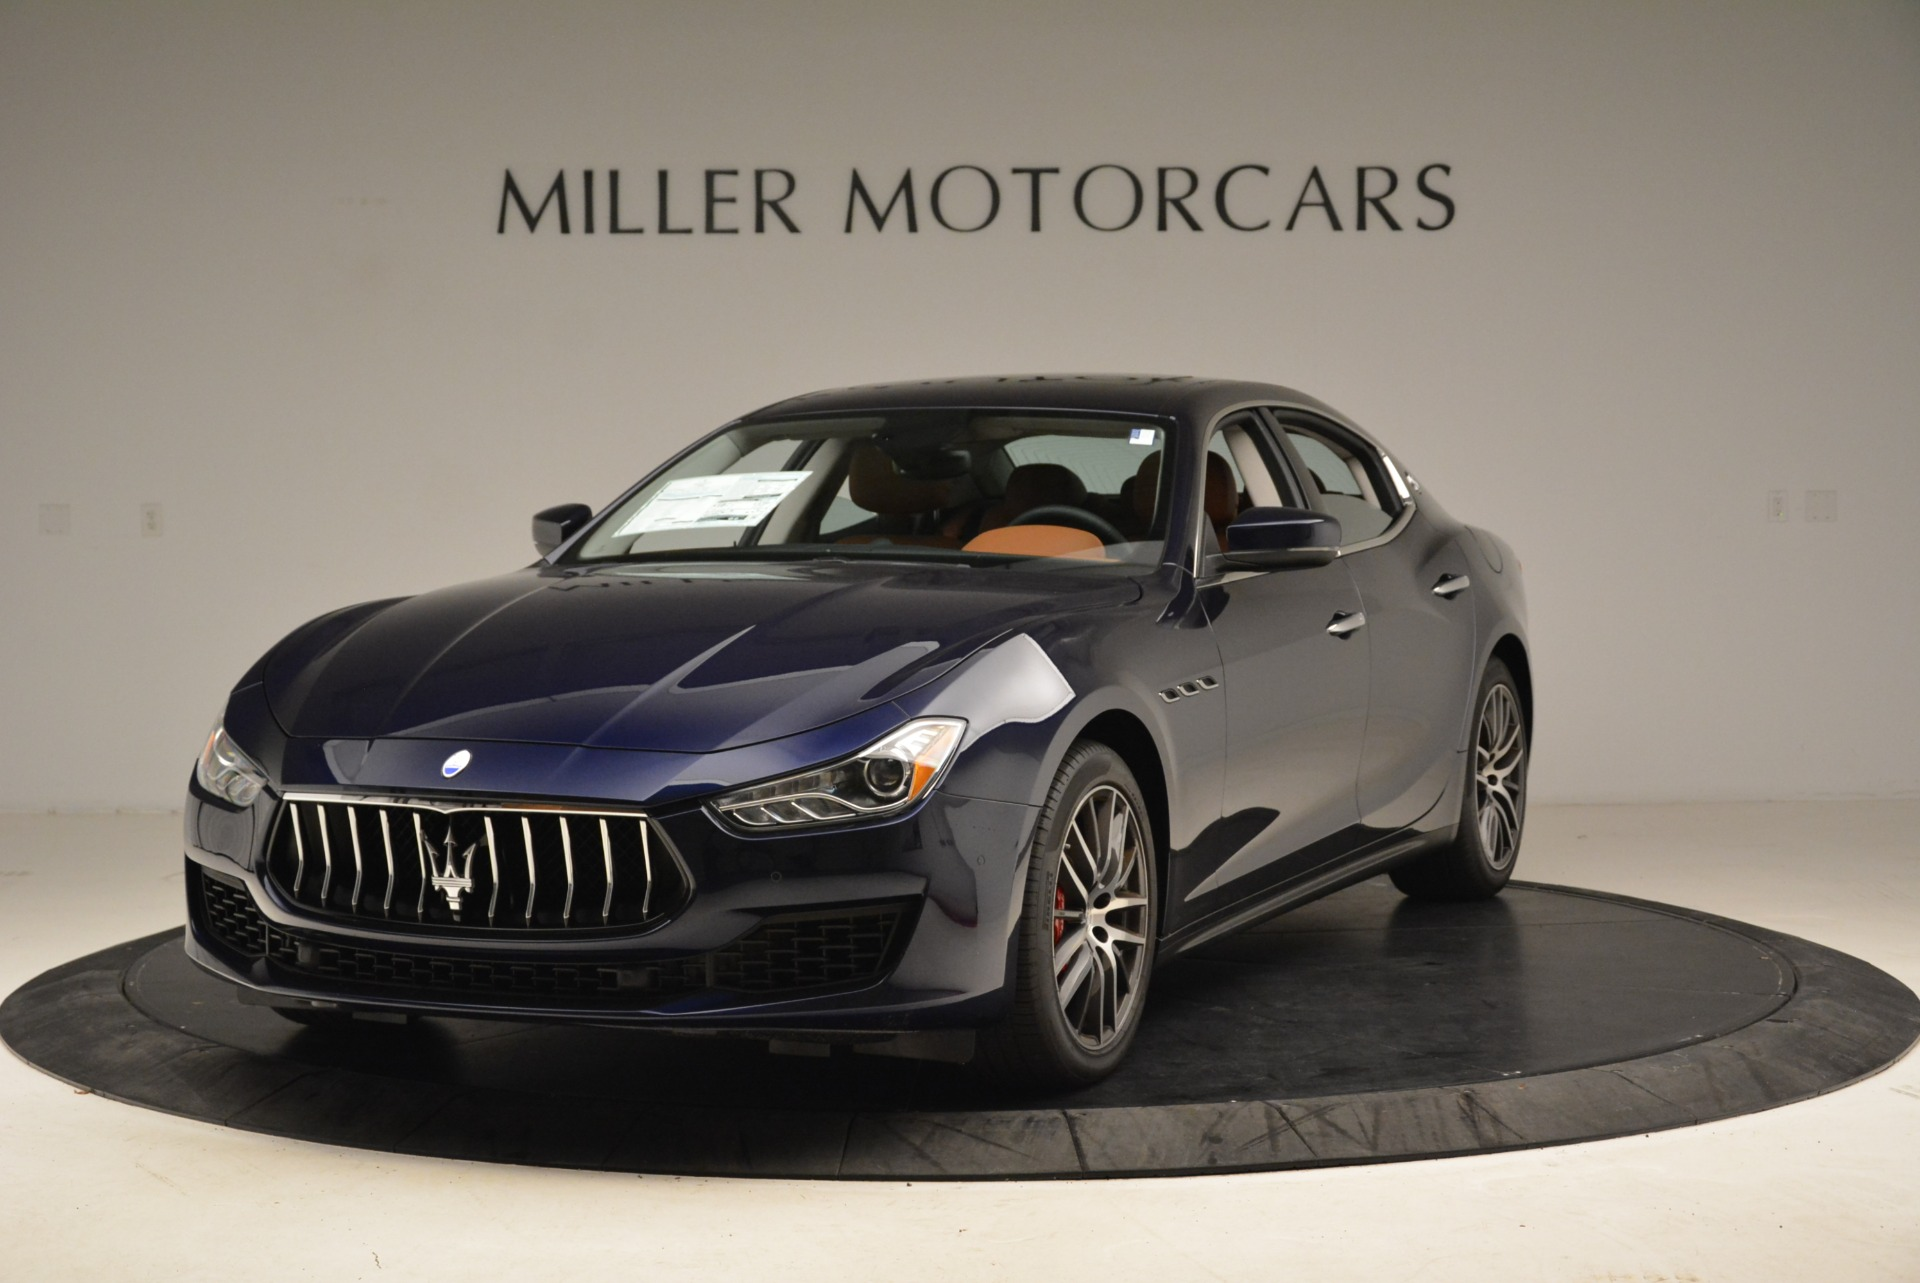 New 2018 Maserati Ghibli S Q4 for sale Sold at Rolls-Royce Motor Cars Greenwich in Greenwich CT 06830 1